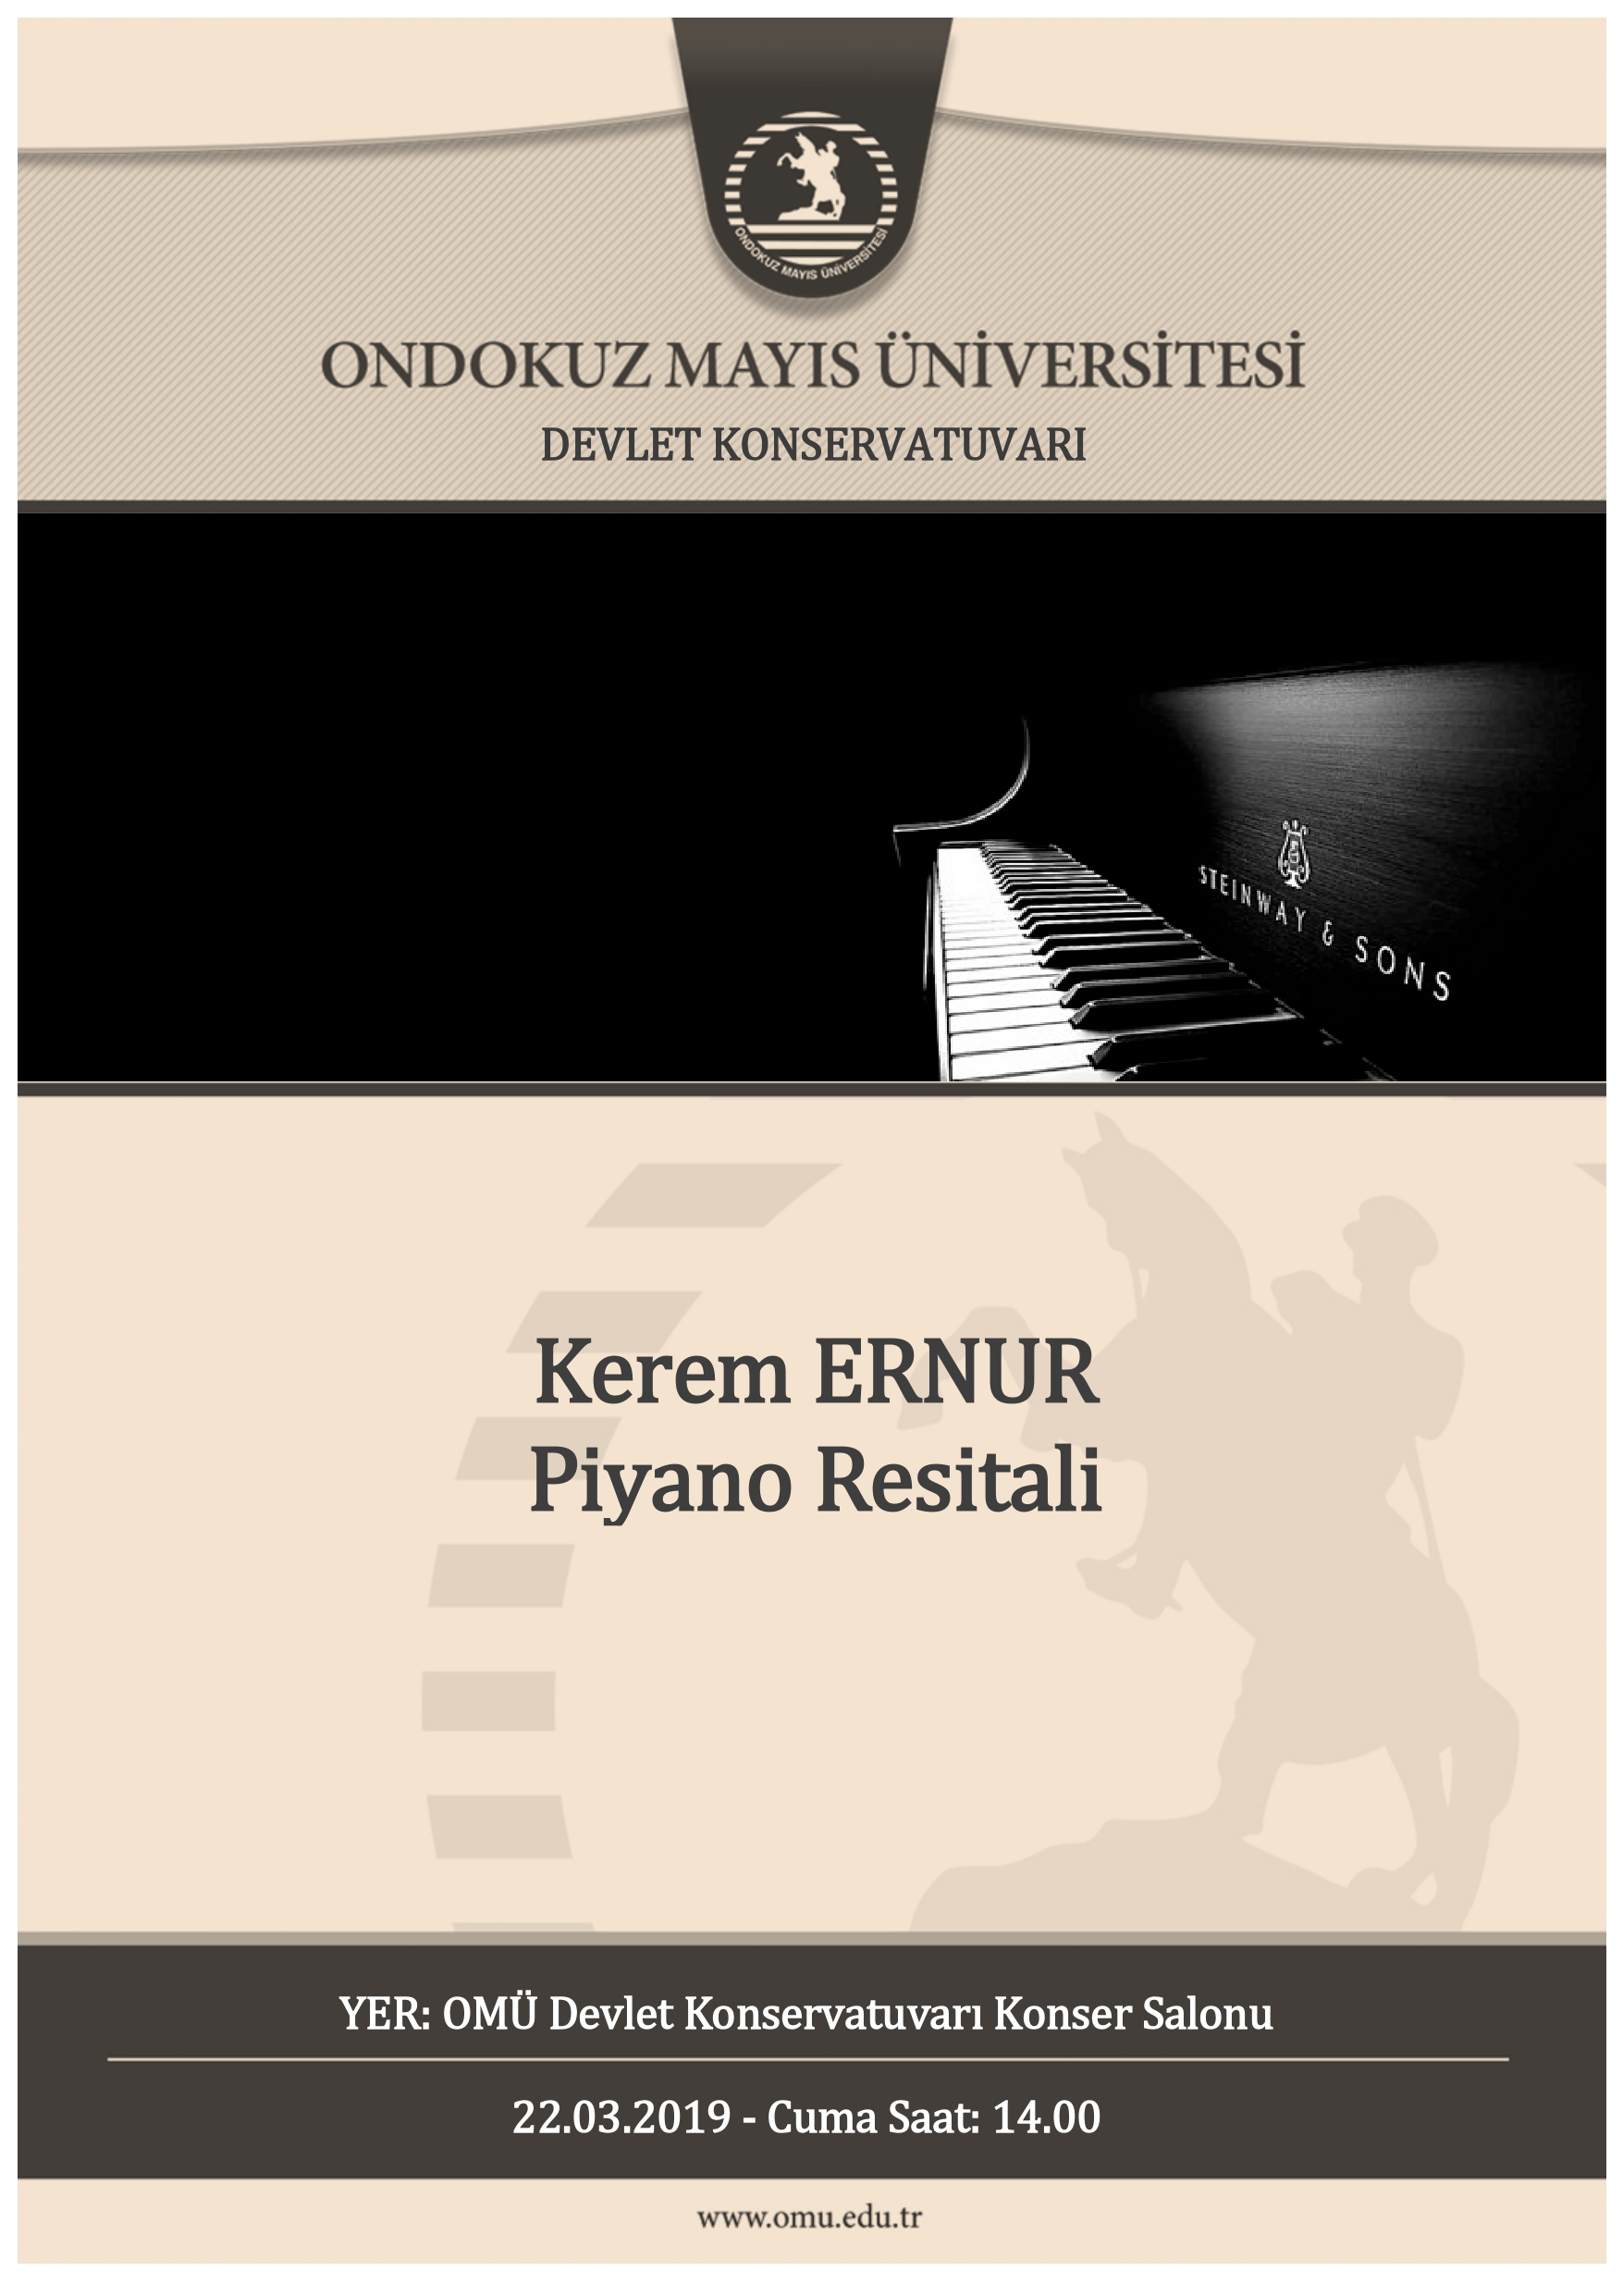 http://www.omu.edu.tr/sites/default/files/kerem_ernur_afis_1_page-0001.jpg